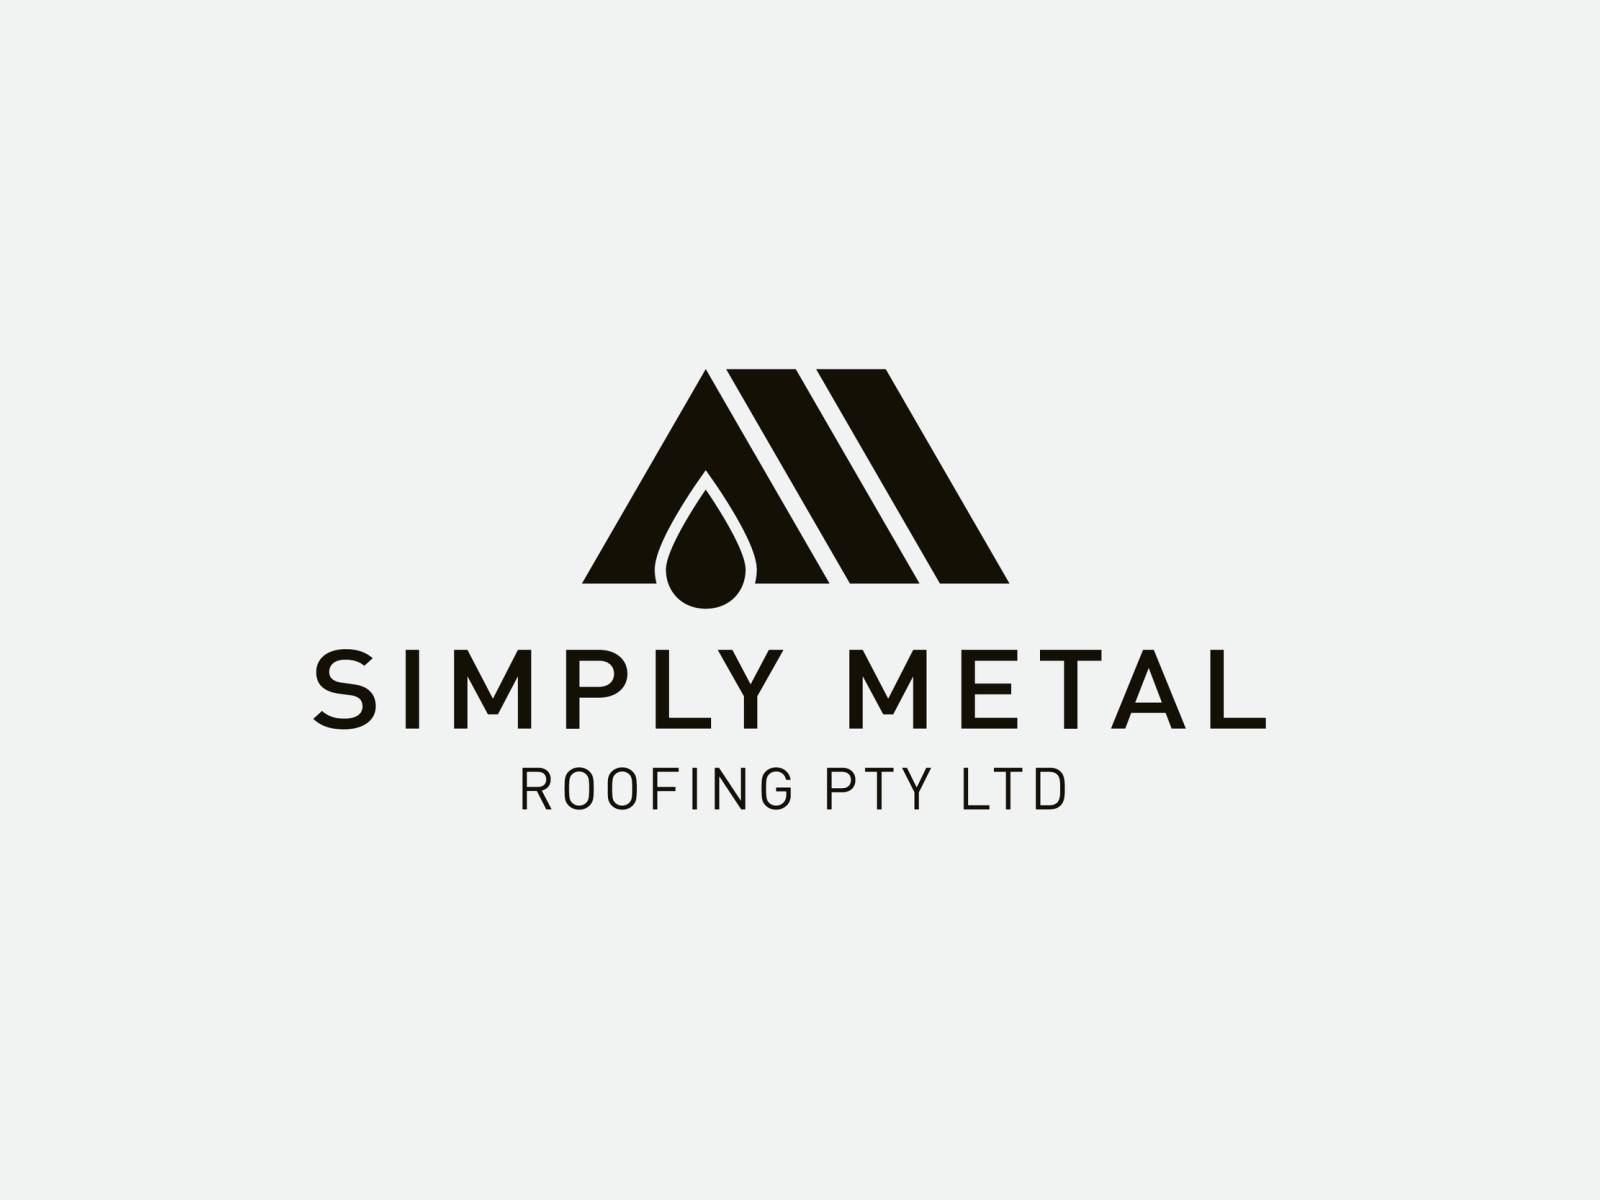 Simply Metal Roofing Logo Sydney Roofing Logo Roofing Company Logos House Logo Design